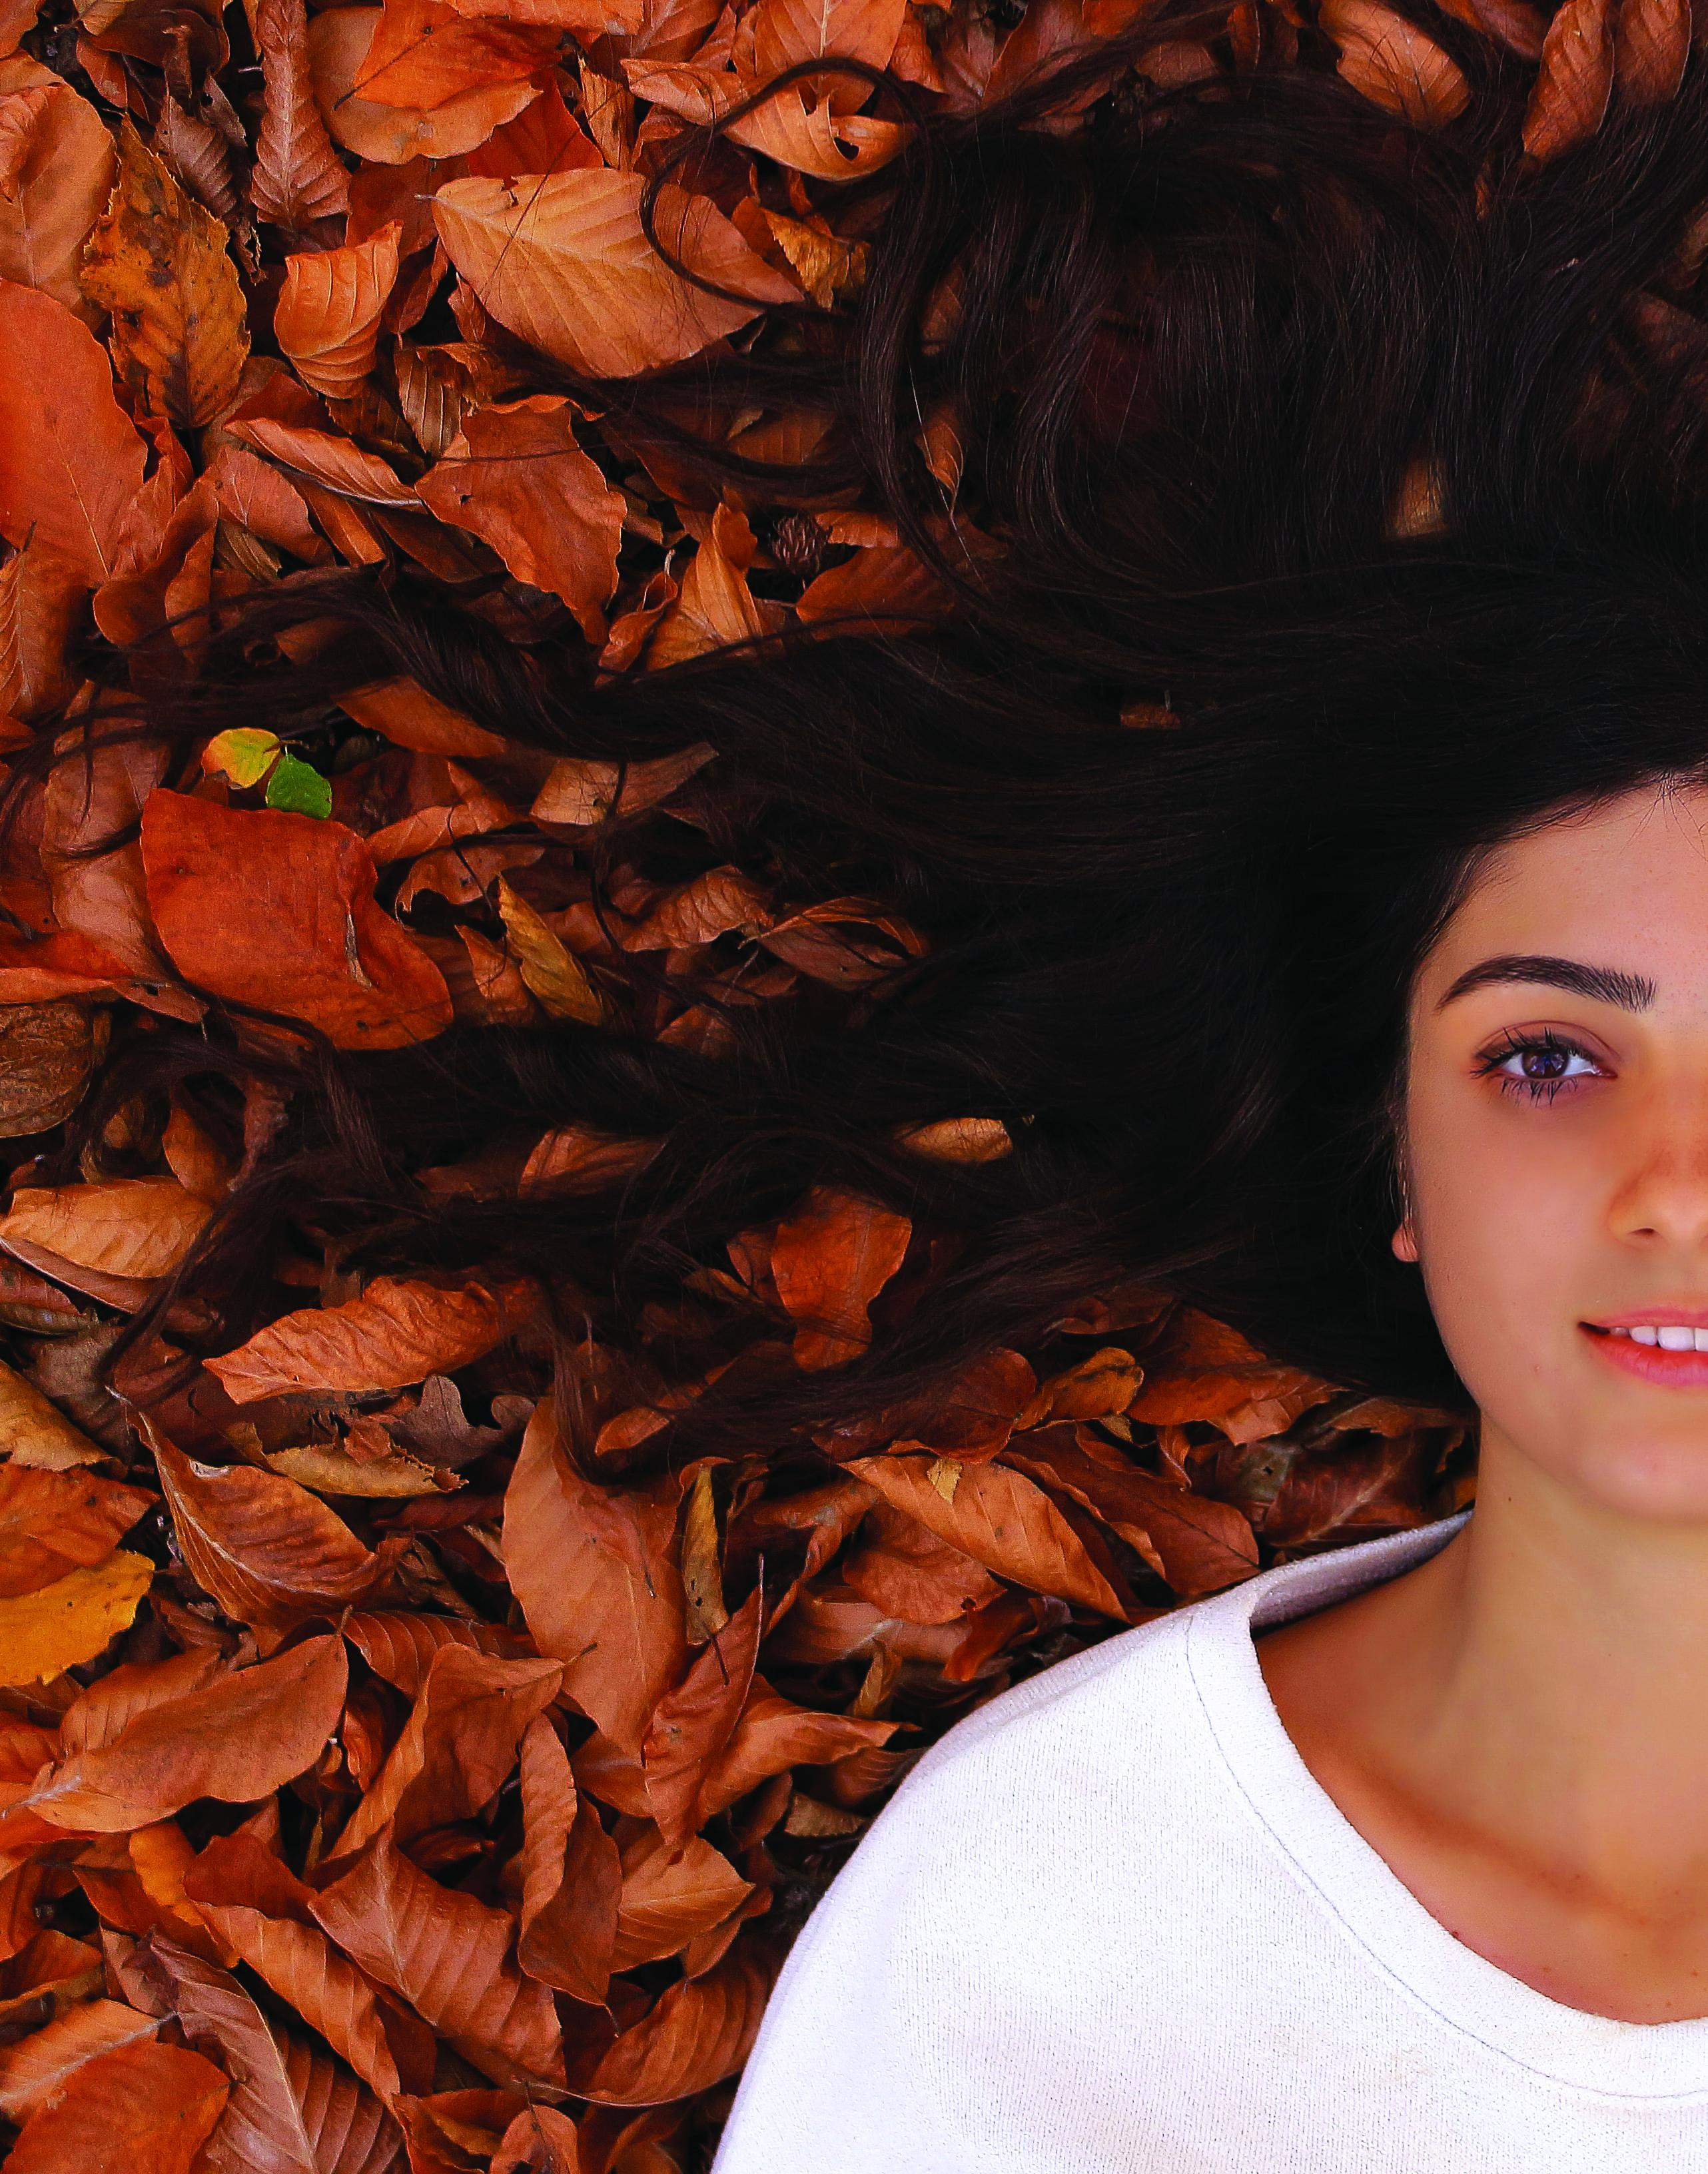 Girl laying in leaves